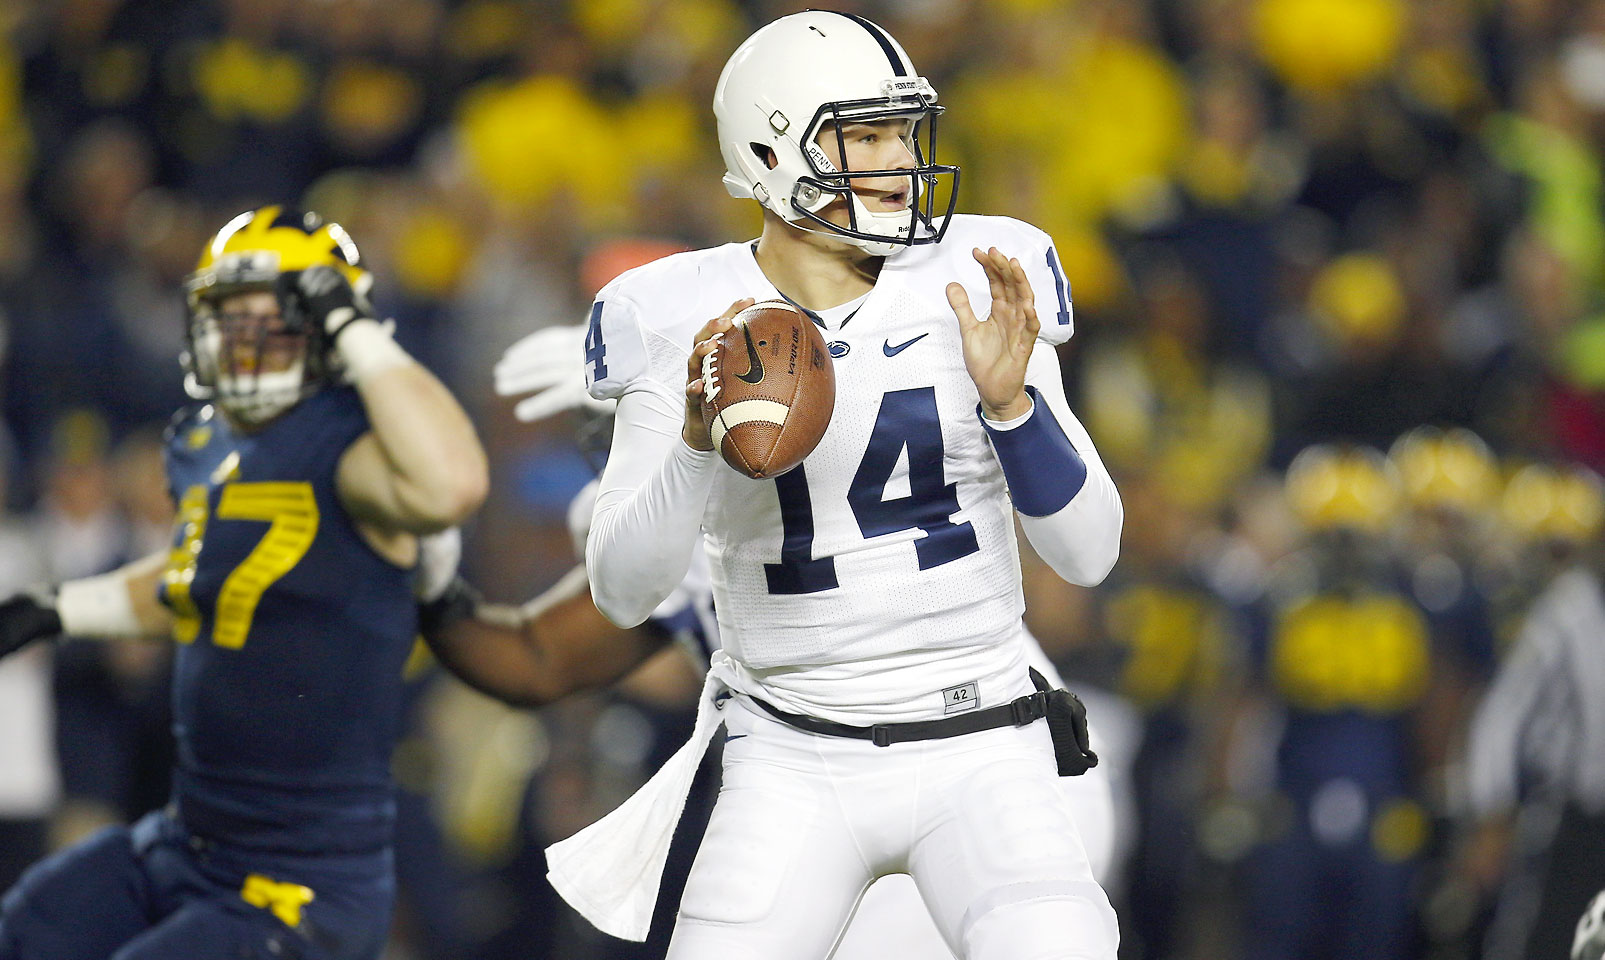 Hackenberg struggled last season in his first year under James Franklin and behind a shaky offensive. But the Nittany Lions' signal caller shined when he started as a true freshman, and another year under Franklin's tutelage in addition to much needed improvements in protection should help to bring out the talent in the former five-star recruit.